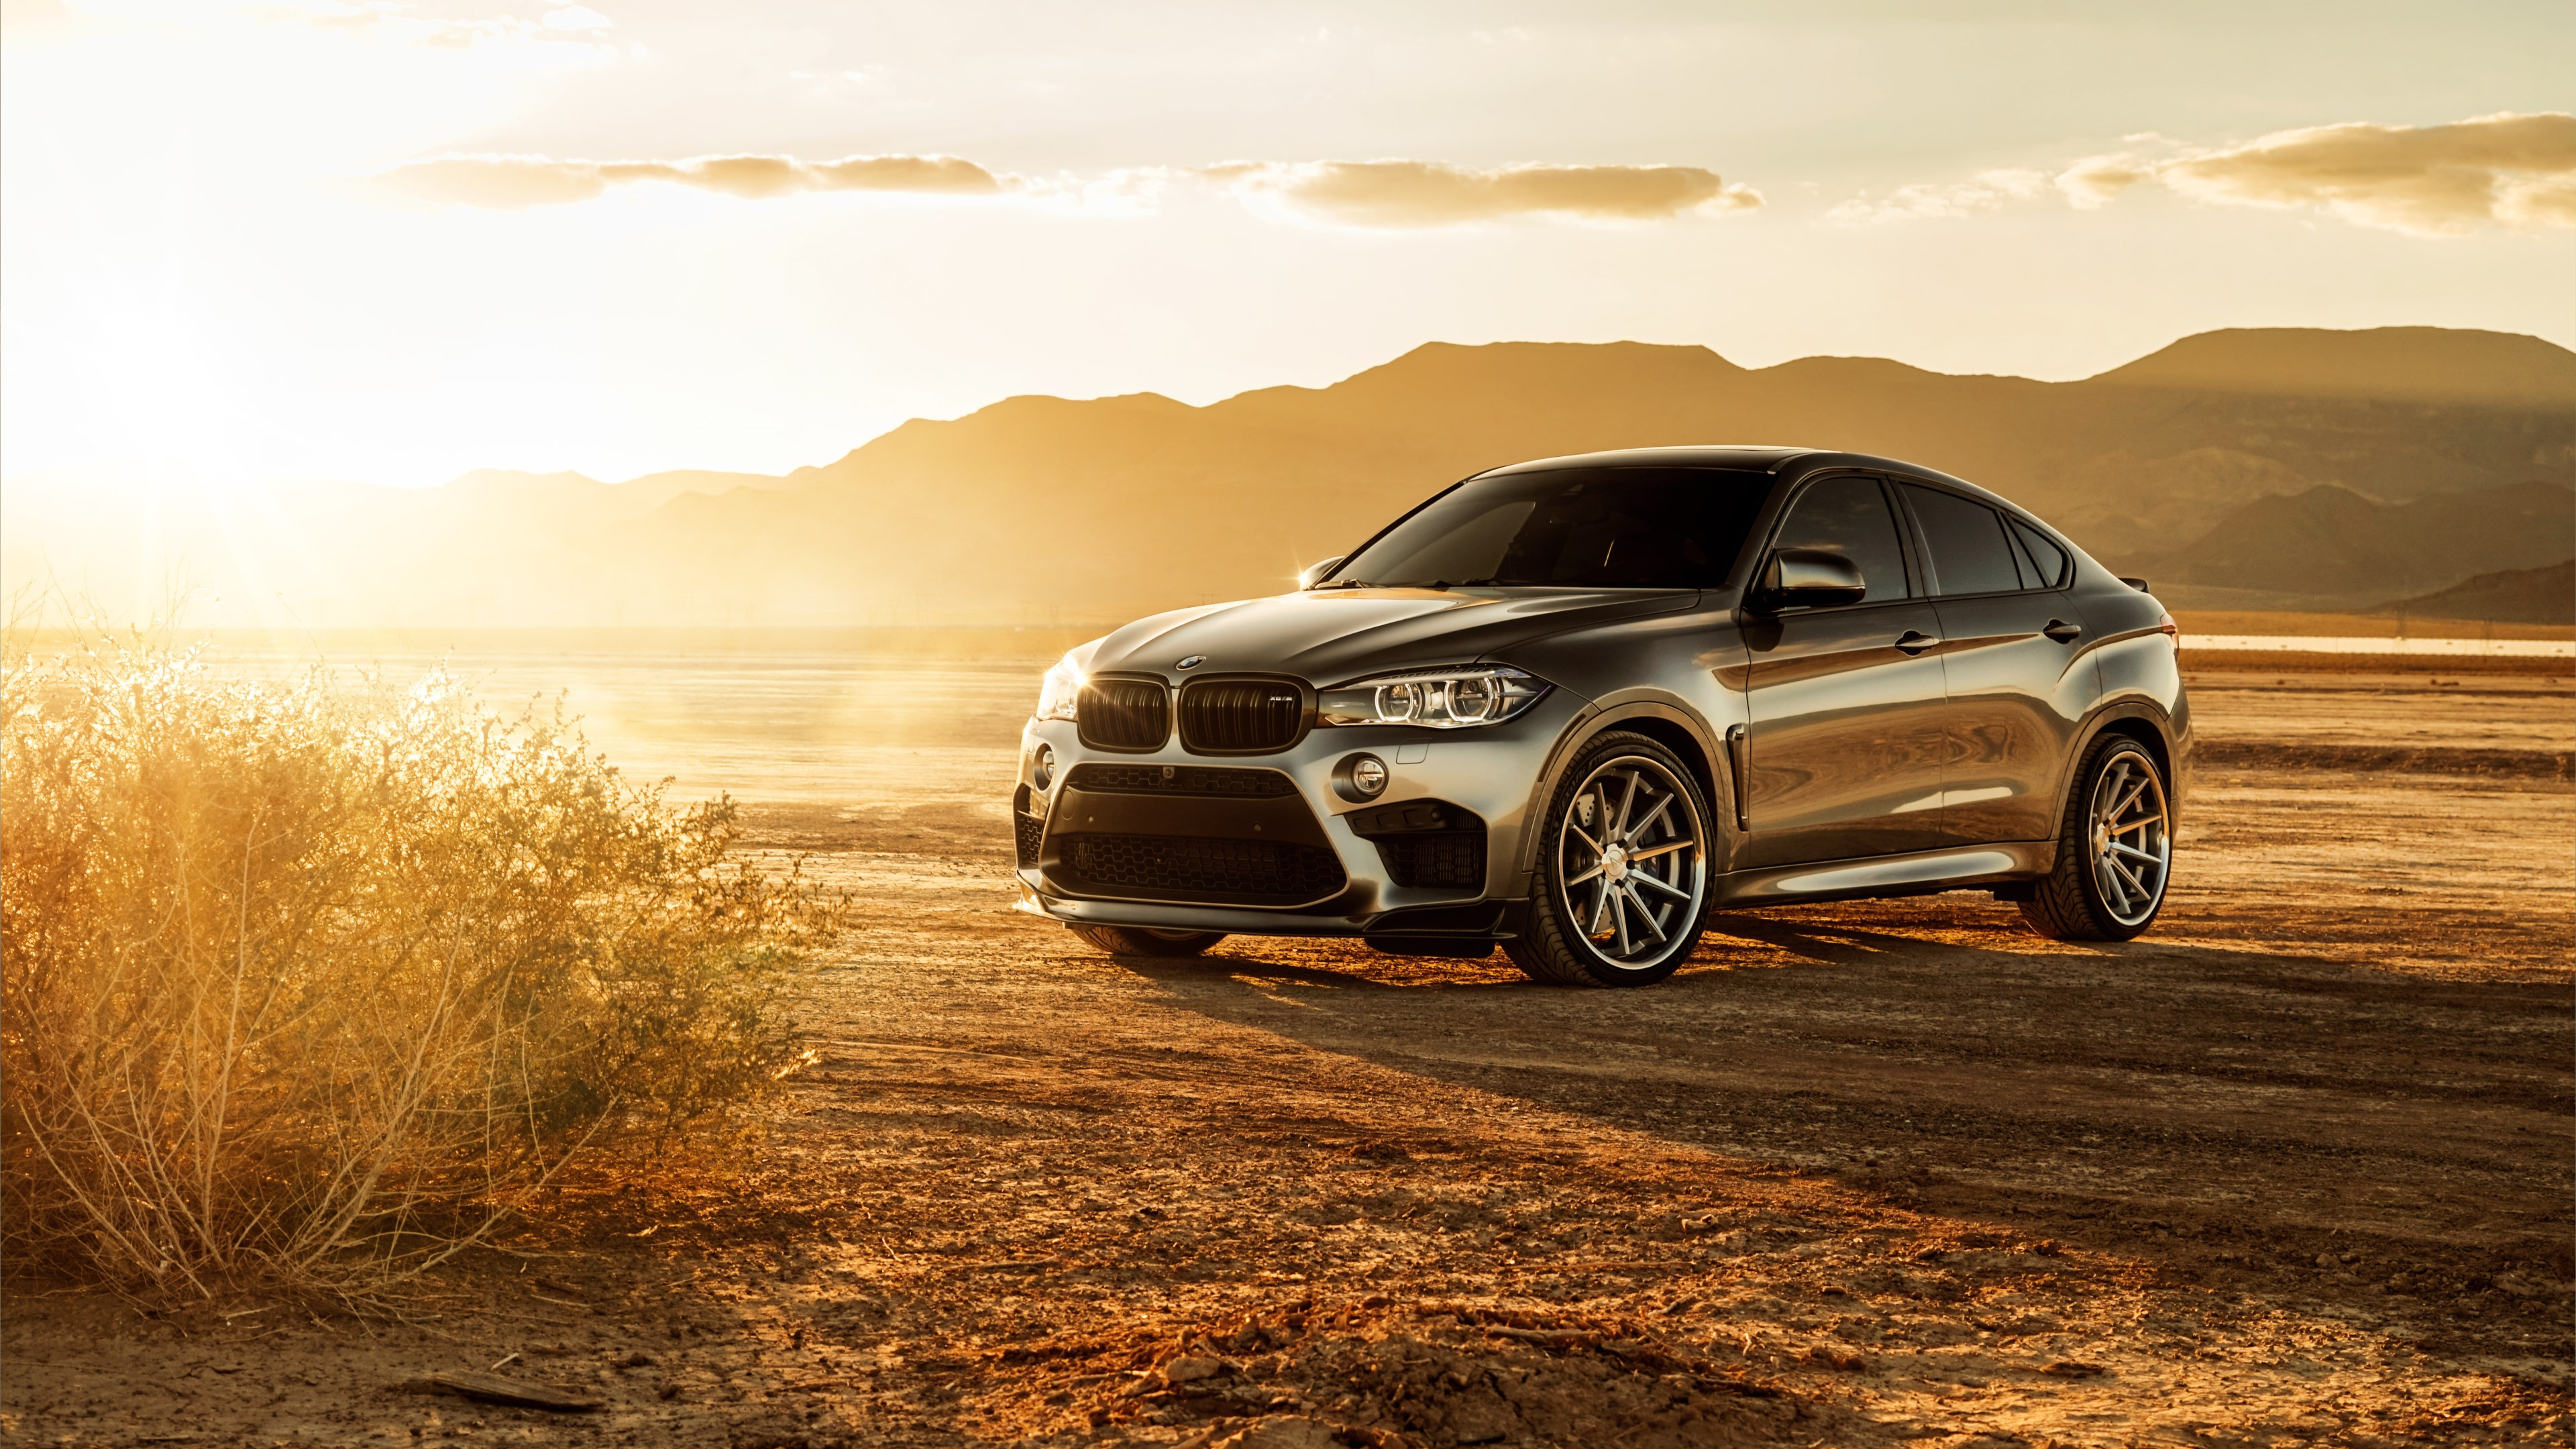 Ferrada BMW X6M Glory | 3840x2160 wallpaper